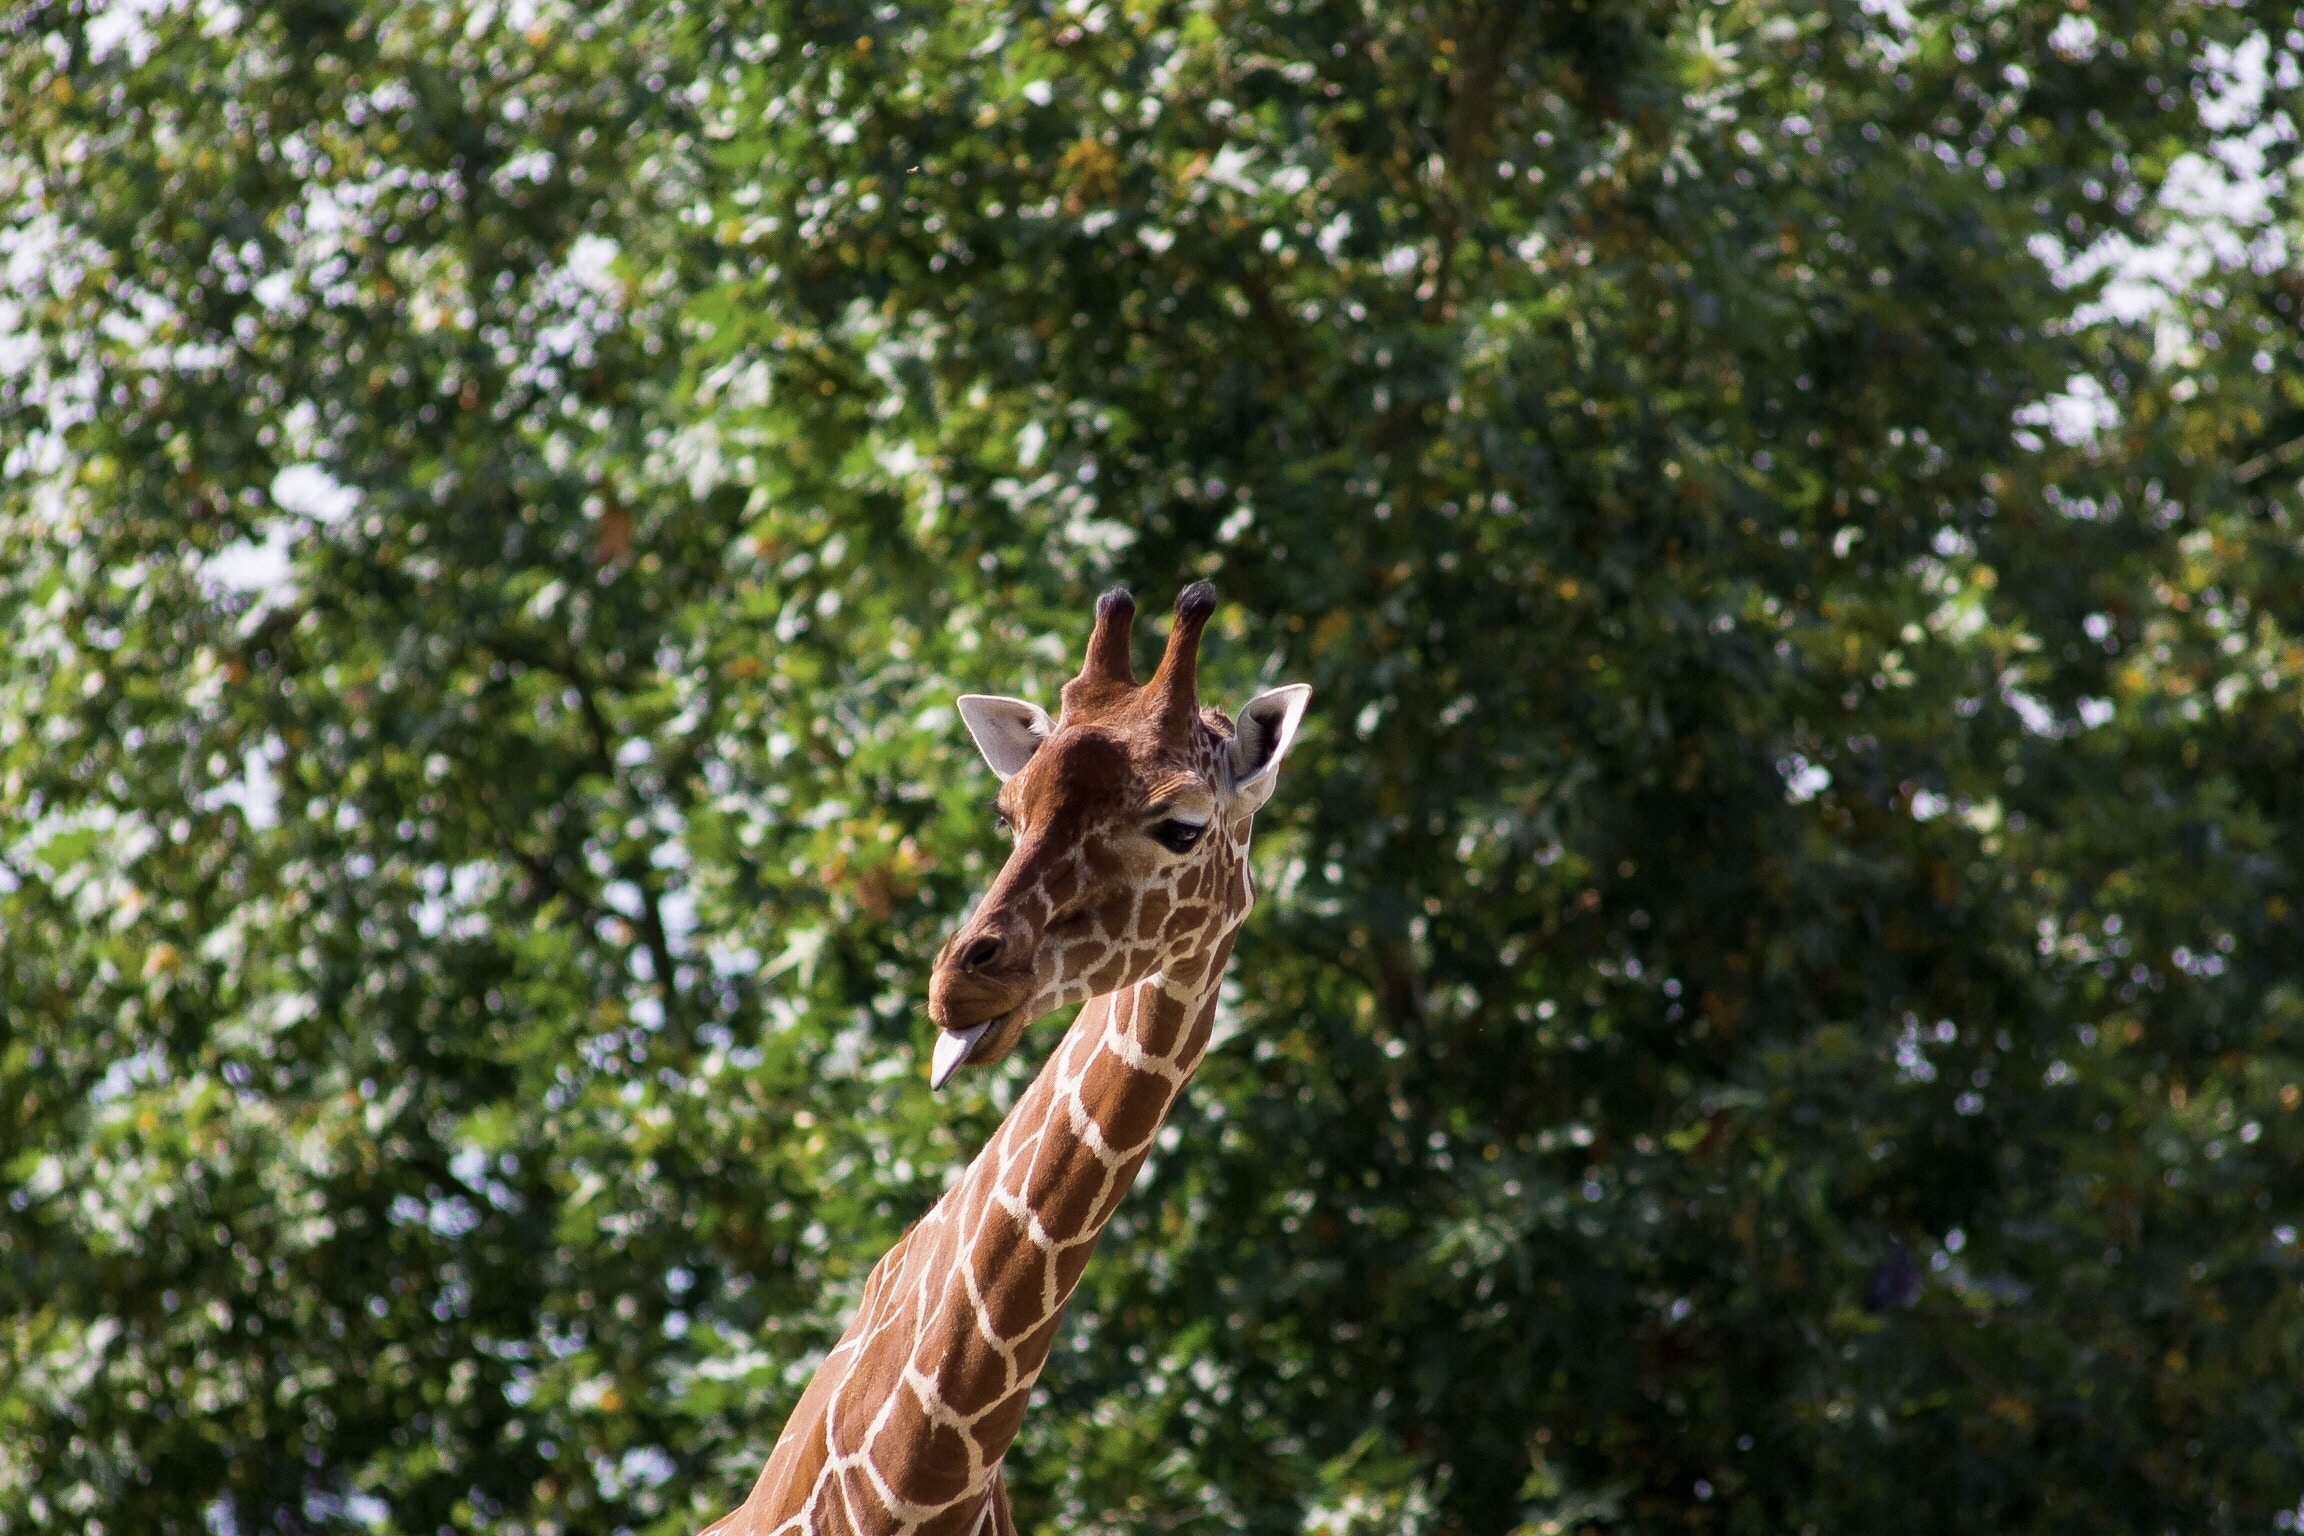 51077 download wallpaper Animals, Giraffe, Cool, Protruding Tongue, Tongue Stuck Out screensavers and pictures for free